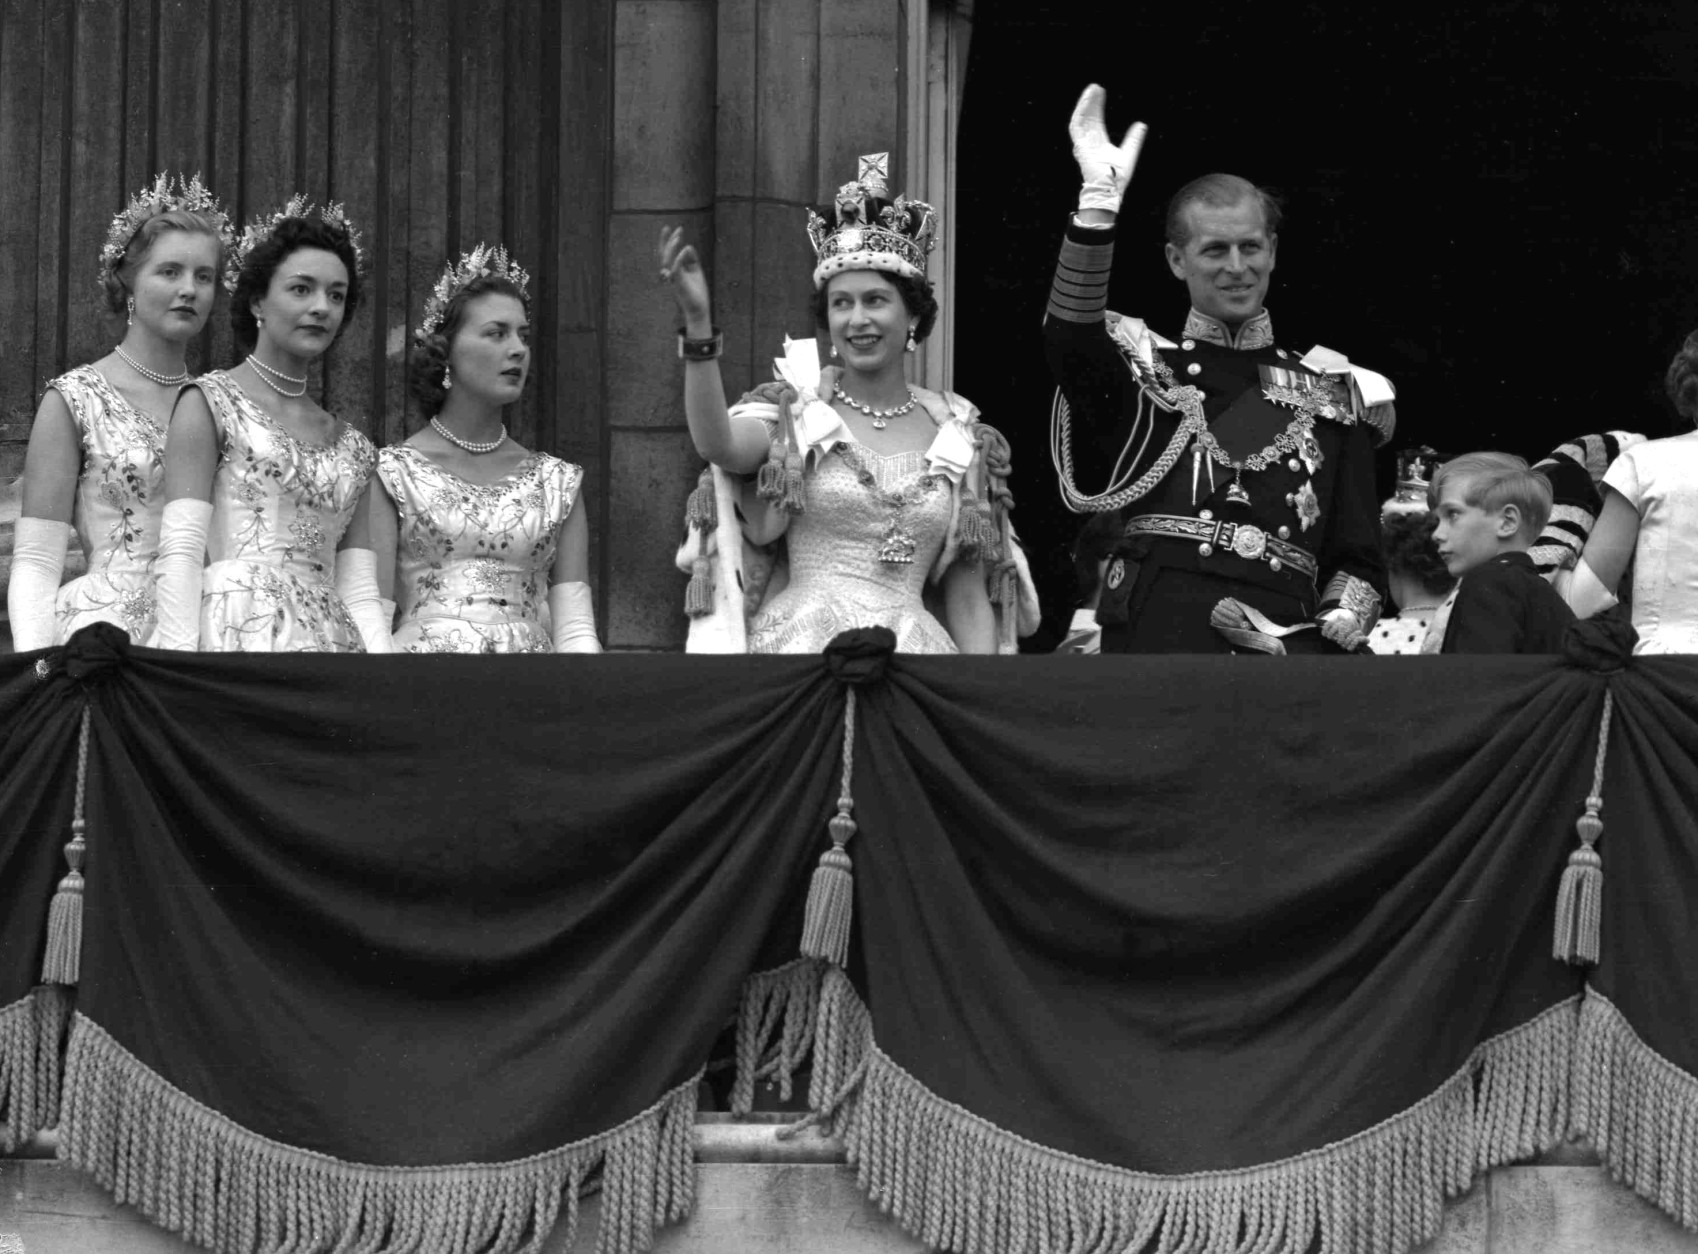 Britain's Queen Elizabeth II and Prince Philip, Duke of Edinburgh, gather with other members of the British royal family to greet supporters from the balcony at Buckingham Palace, following her coronation at Westminster Abbey. London, June. 2, 1953. (AP Photo/Priest)